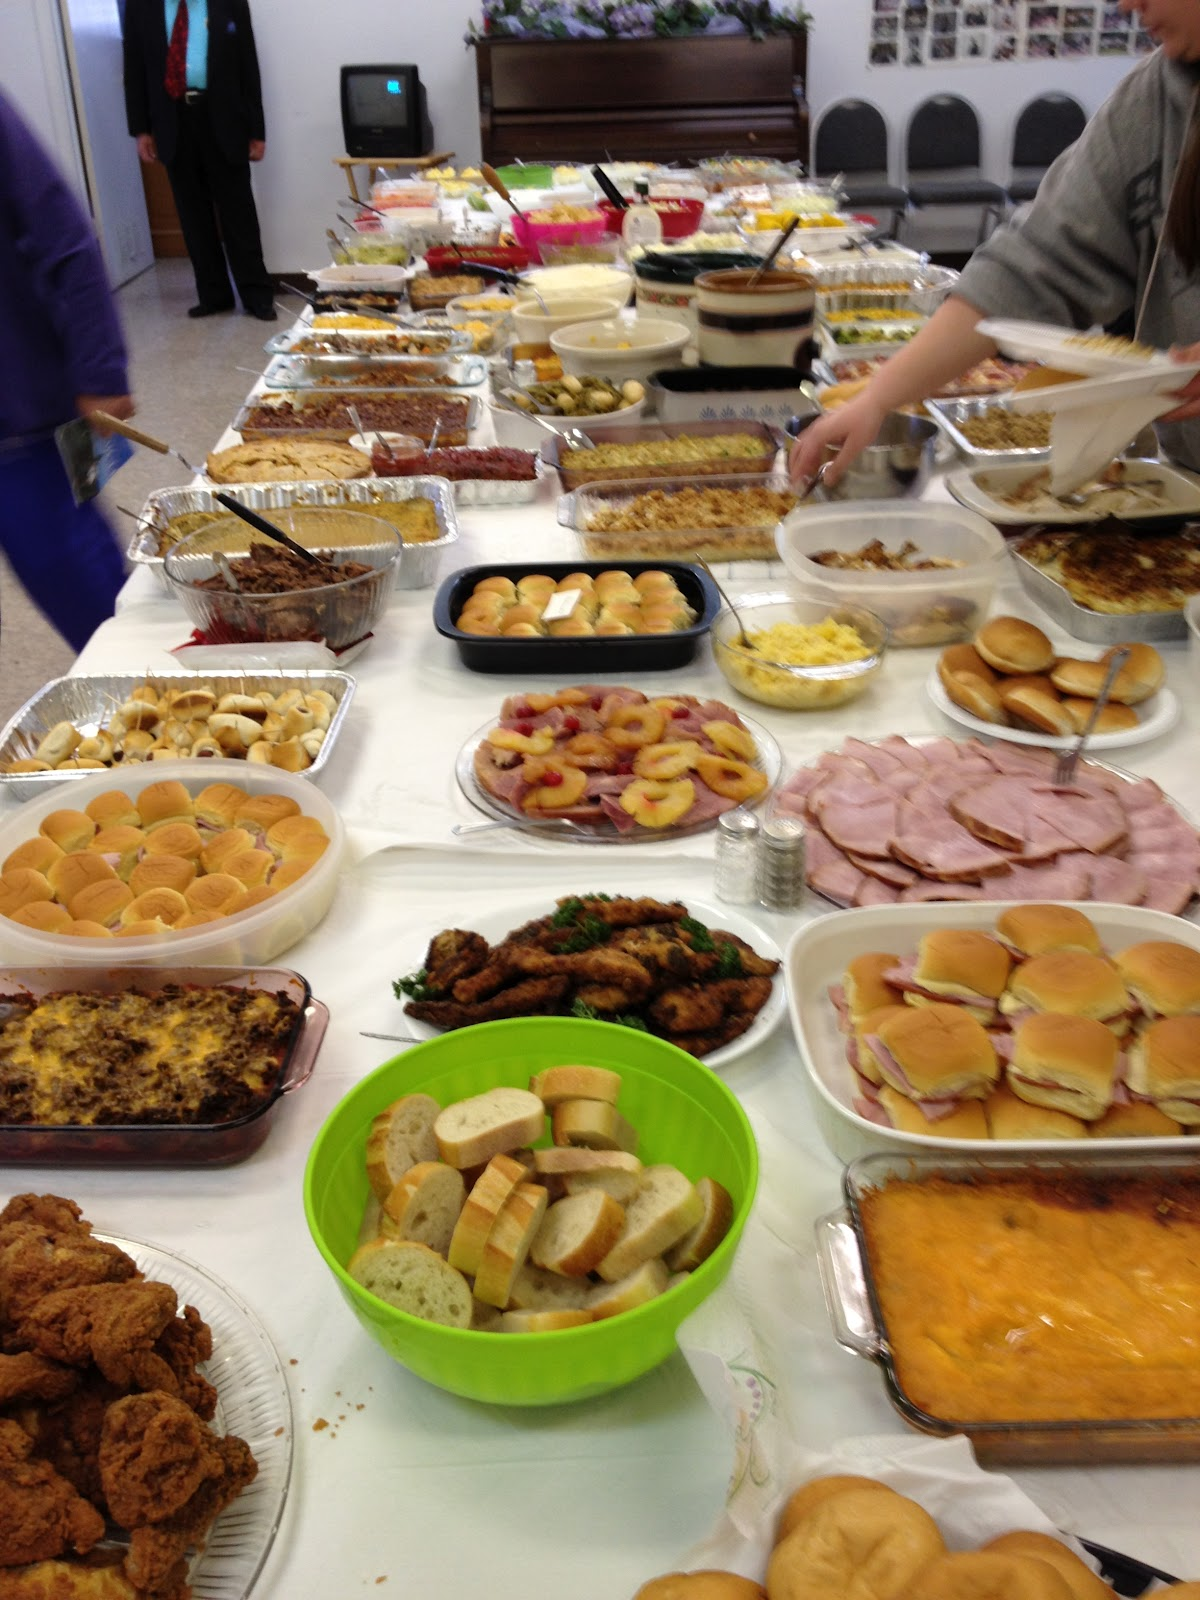 Image result for church potluck dinner""